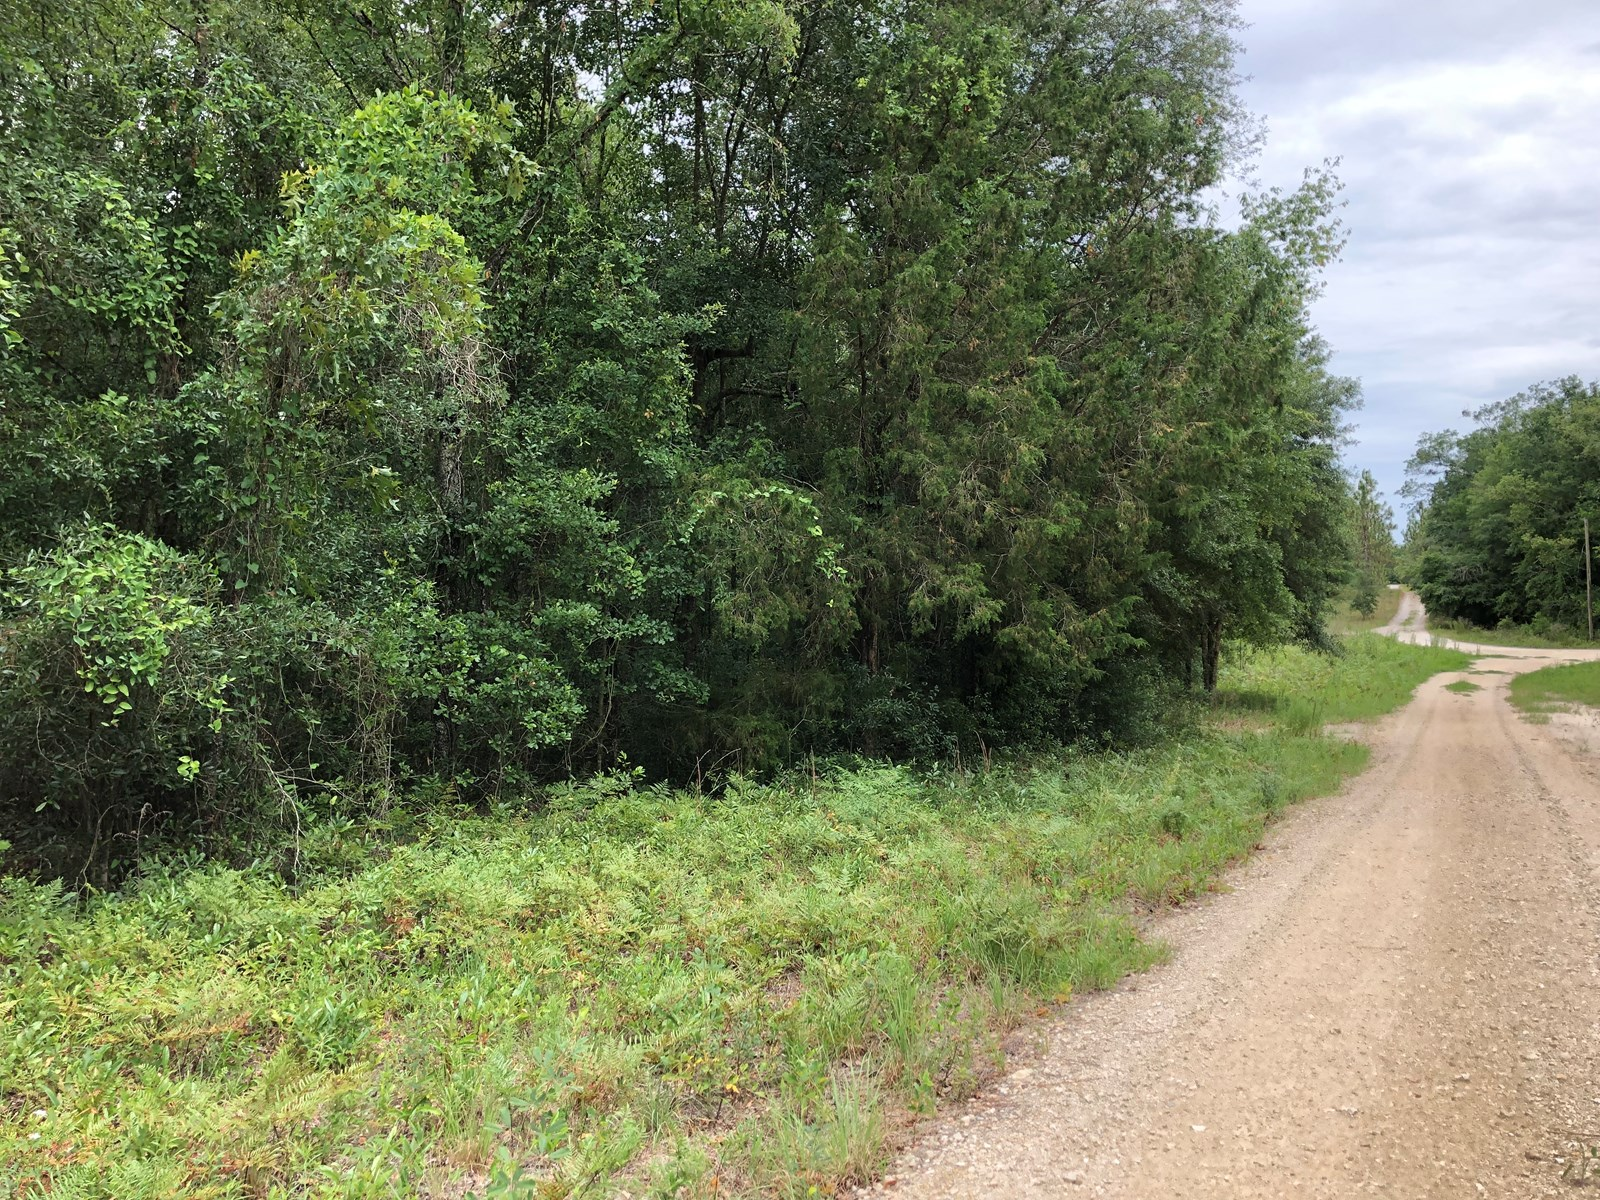 4 ACRE WOODED LOT FOR SALE IN O'BRIEN, FLORIDA